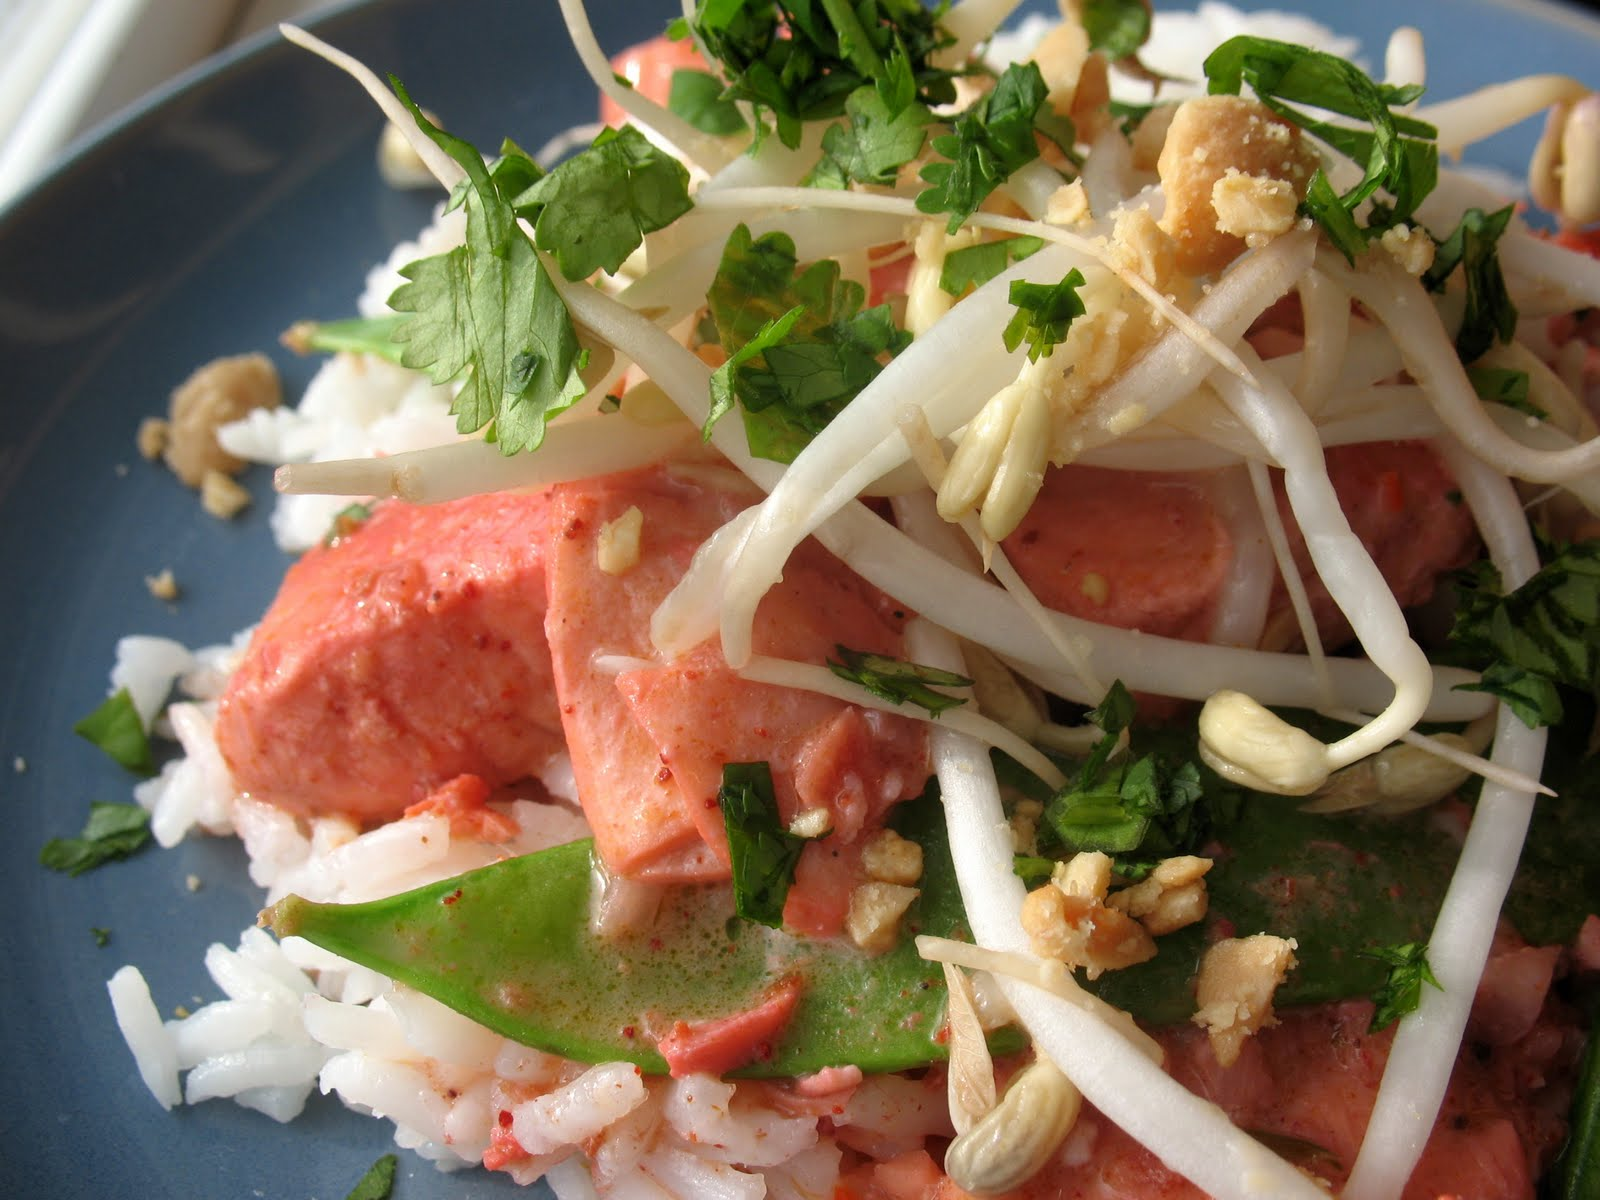 Jamie olivers quick salmon stir fry chasing tomatoes jamie olivers quick salmon stir fry ccuart Gallery